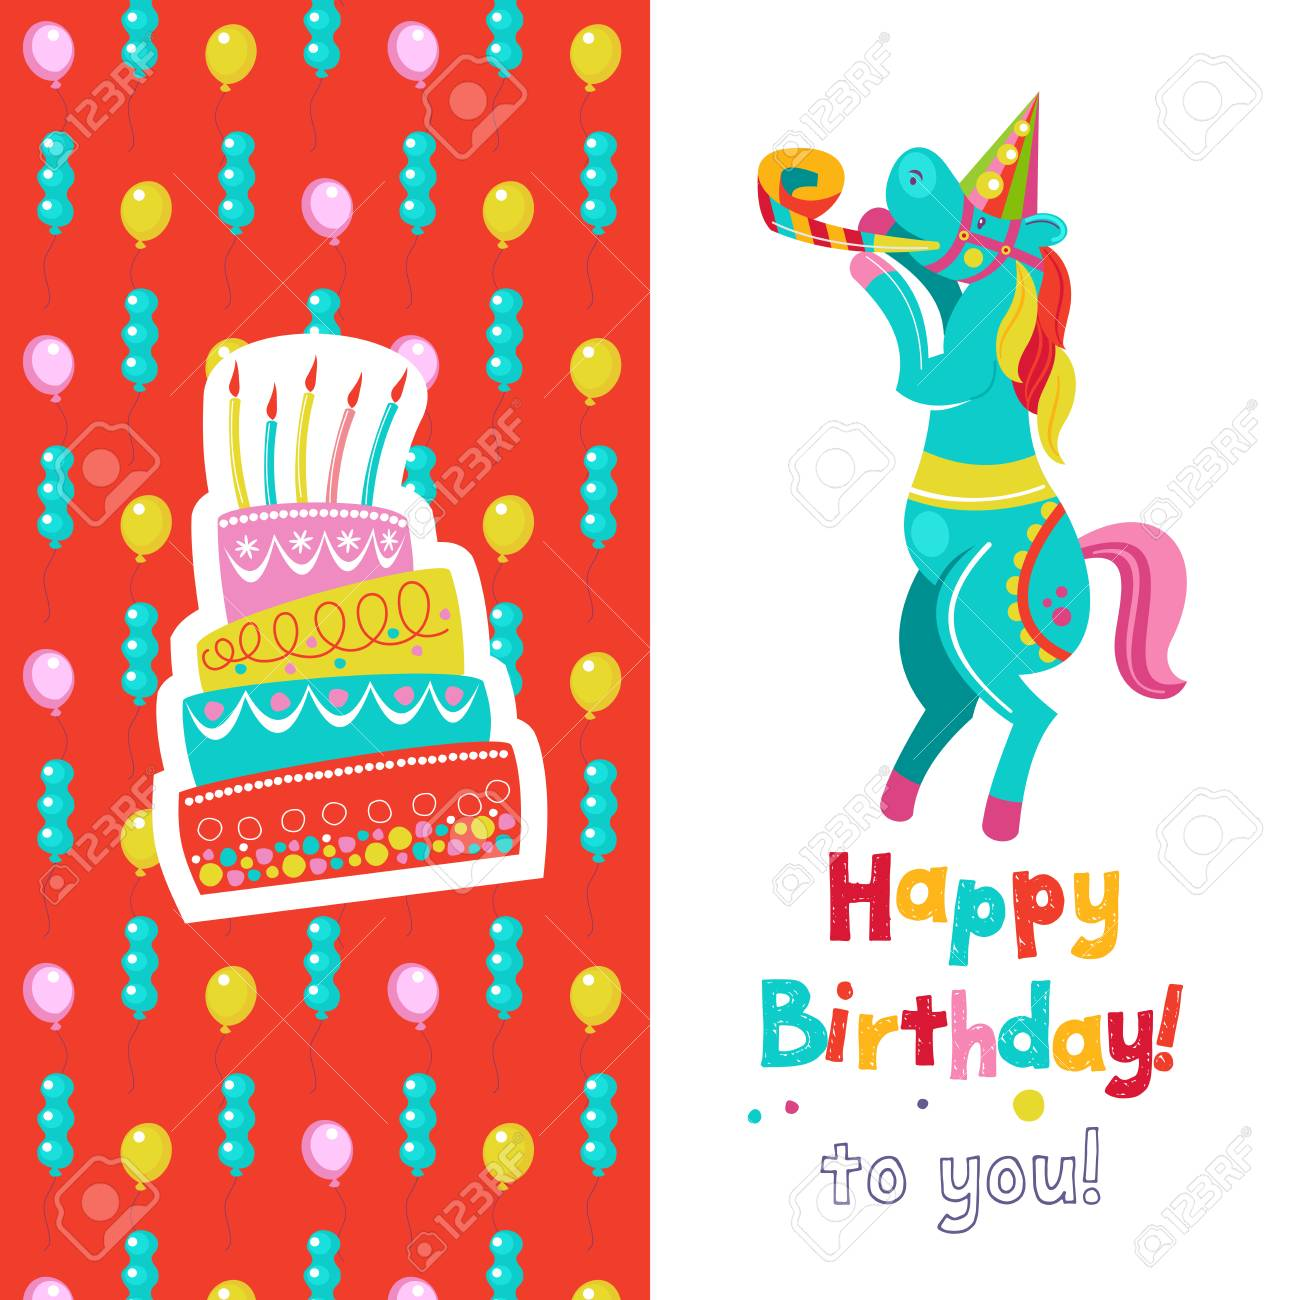 Congratulations on your birthday invitation to a festive party congratulations on your birthday invitation to a festive party funny circus horse and a filmwisefo